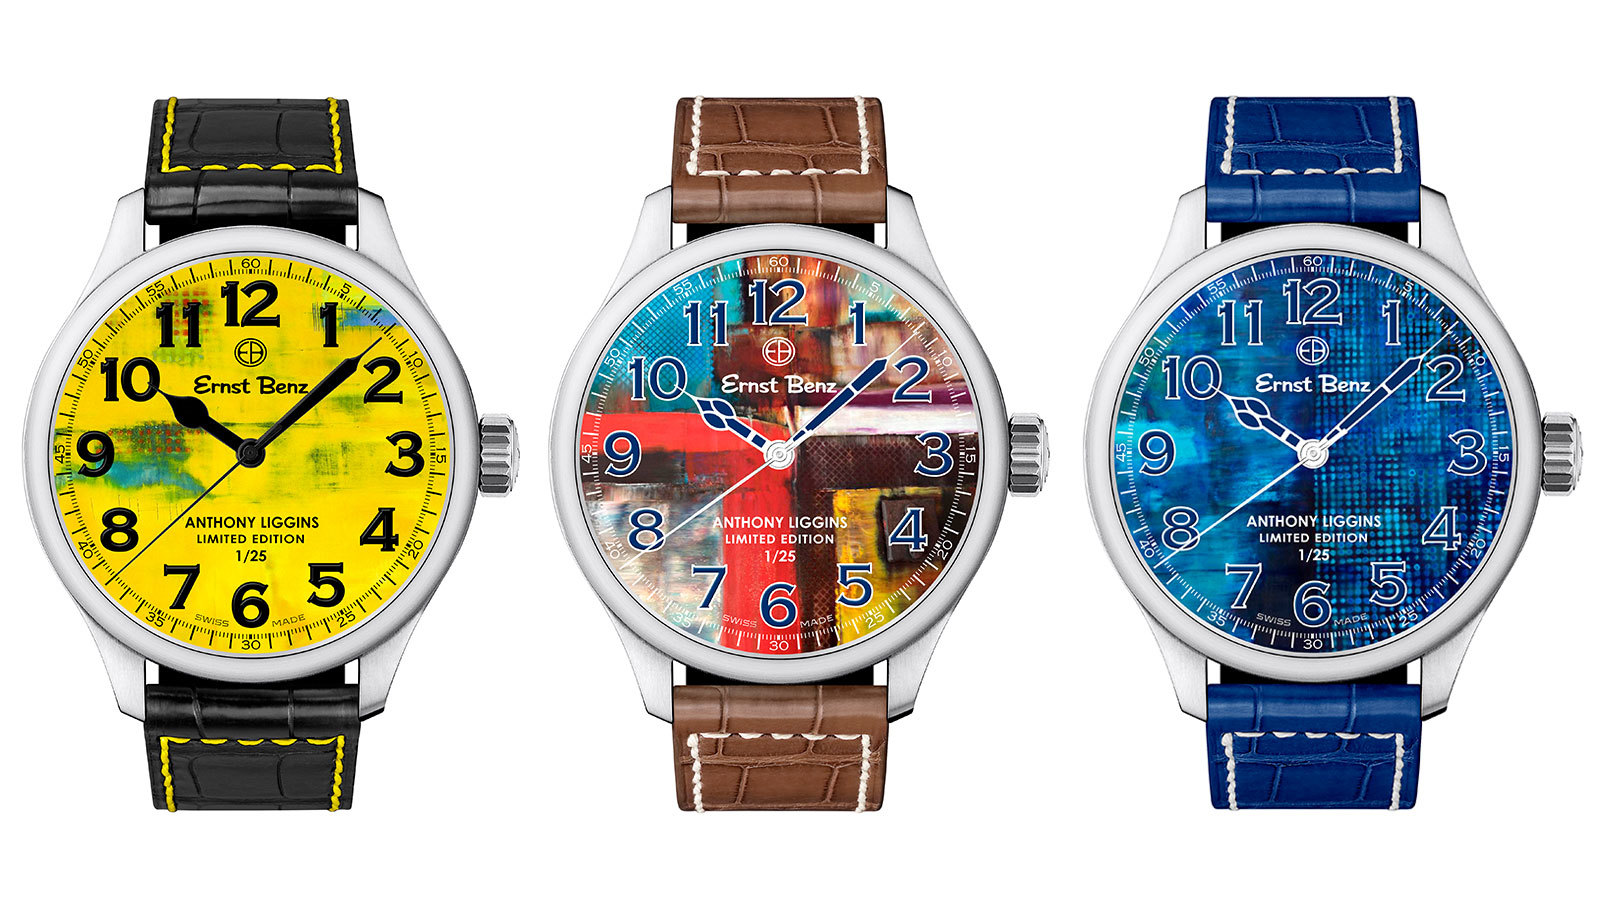 Ernst Benz and Anthony Liggins watches